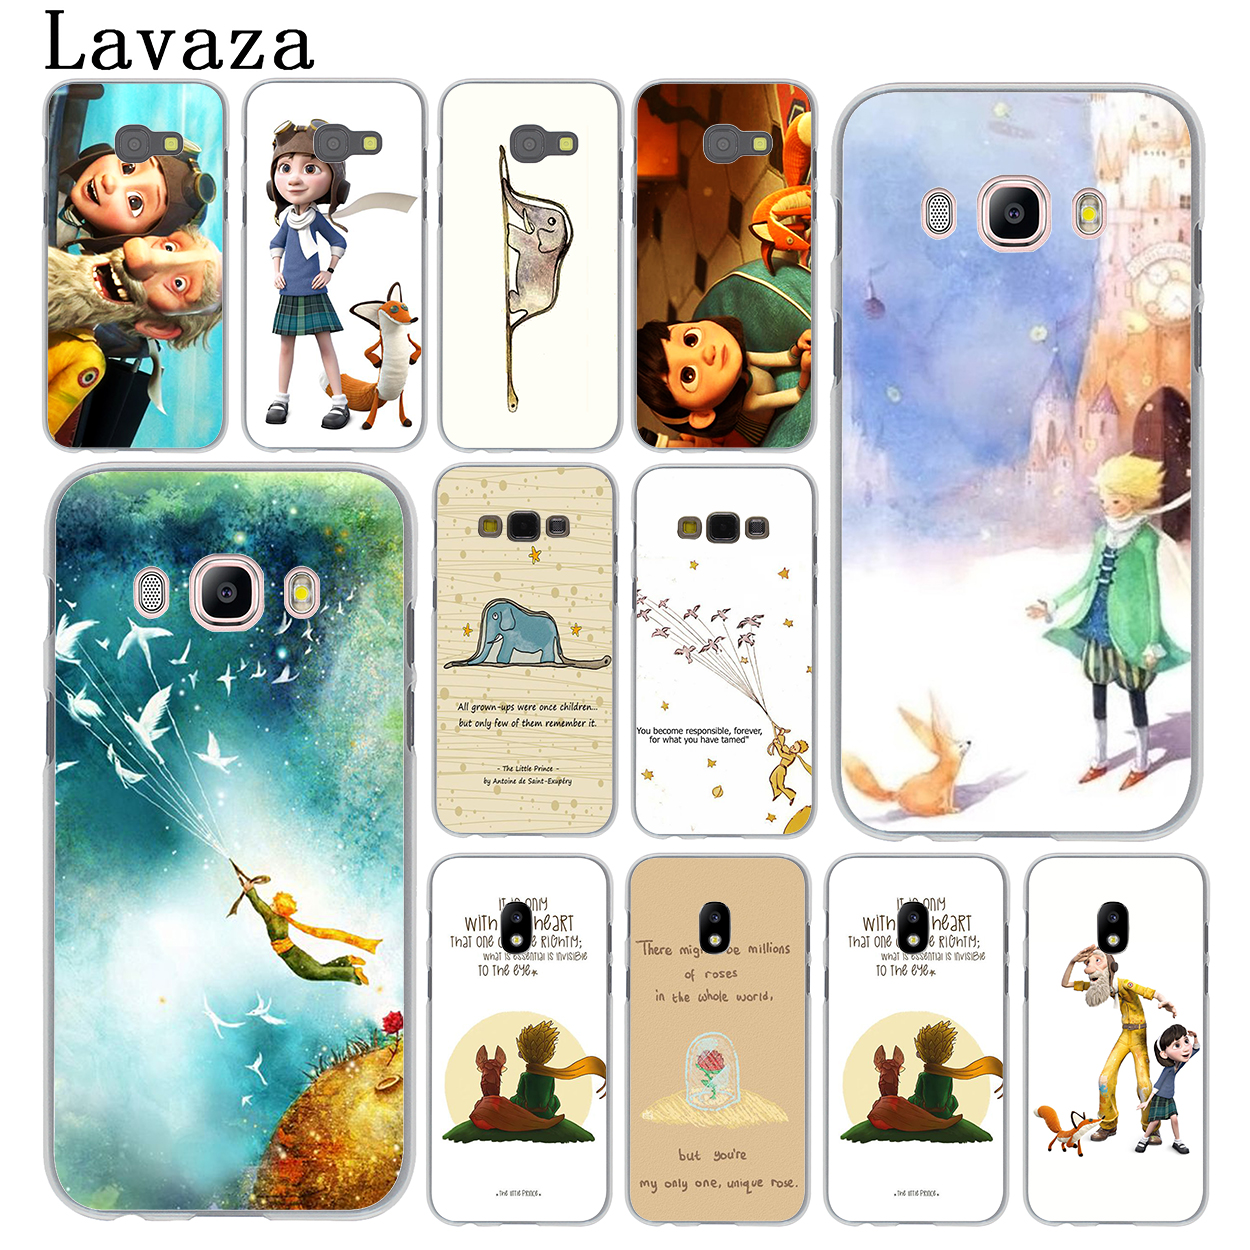 Lavaza The little prince and the fox Phone Cover Case for Samsung Galaxy J3 J1 J7 J5 2015 2016 2017 J2 Pro Ace J5 J7 Prime Cases